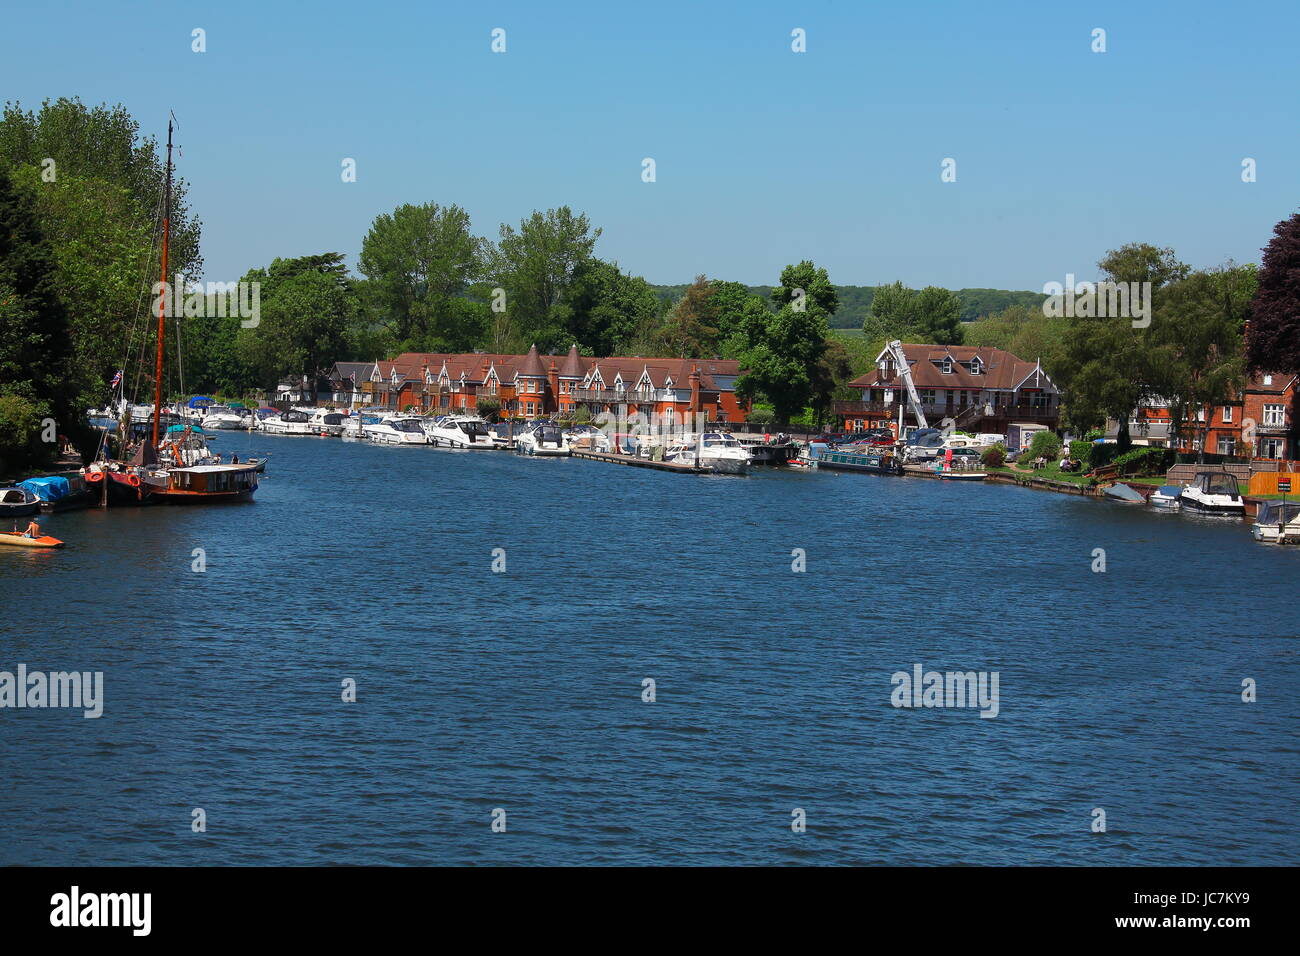 Looking out towards the Bourne end Marina with its riverside restaurant and boats of all sizes as well as homes - Stock Image